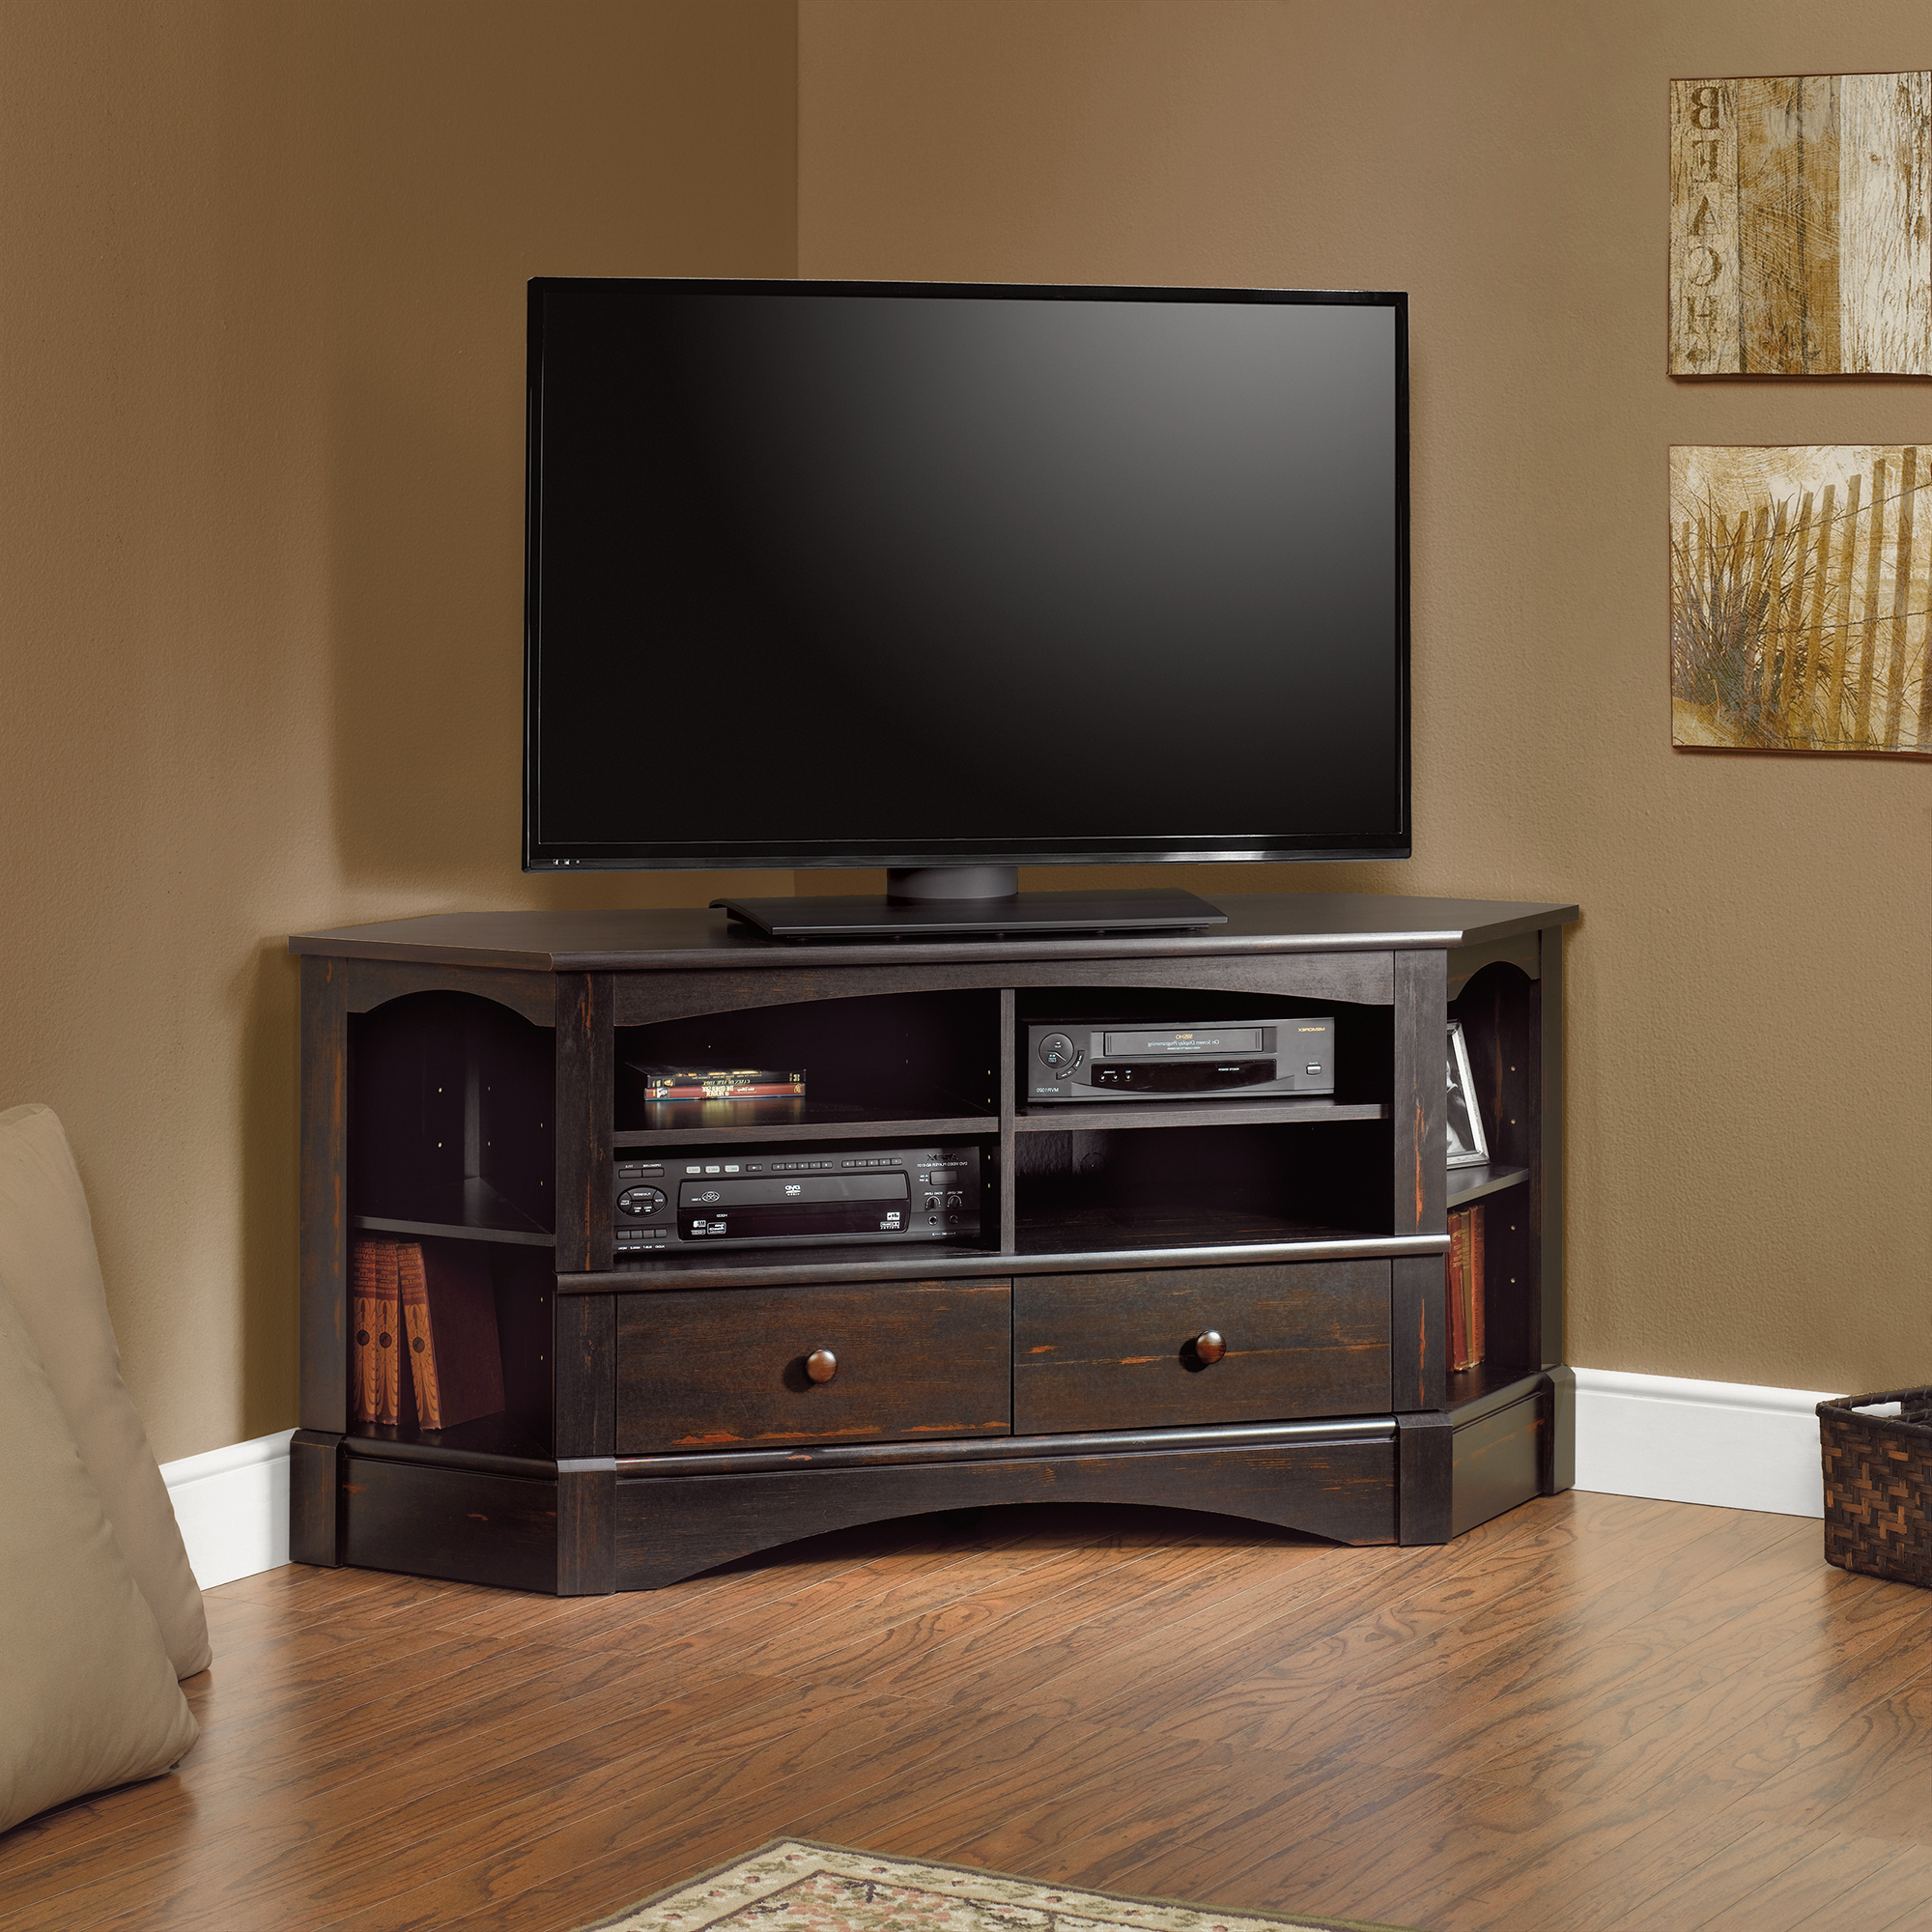 Sauder With Regard To Best And Newest Corner Tv Cabinets (View 18 of 20)